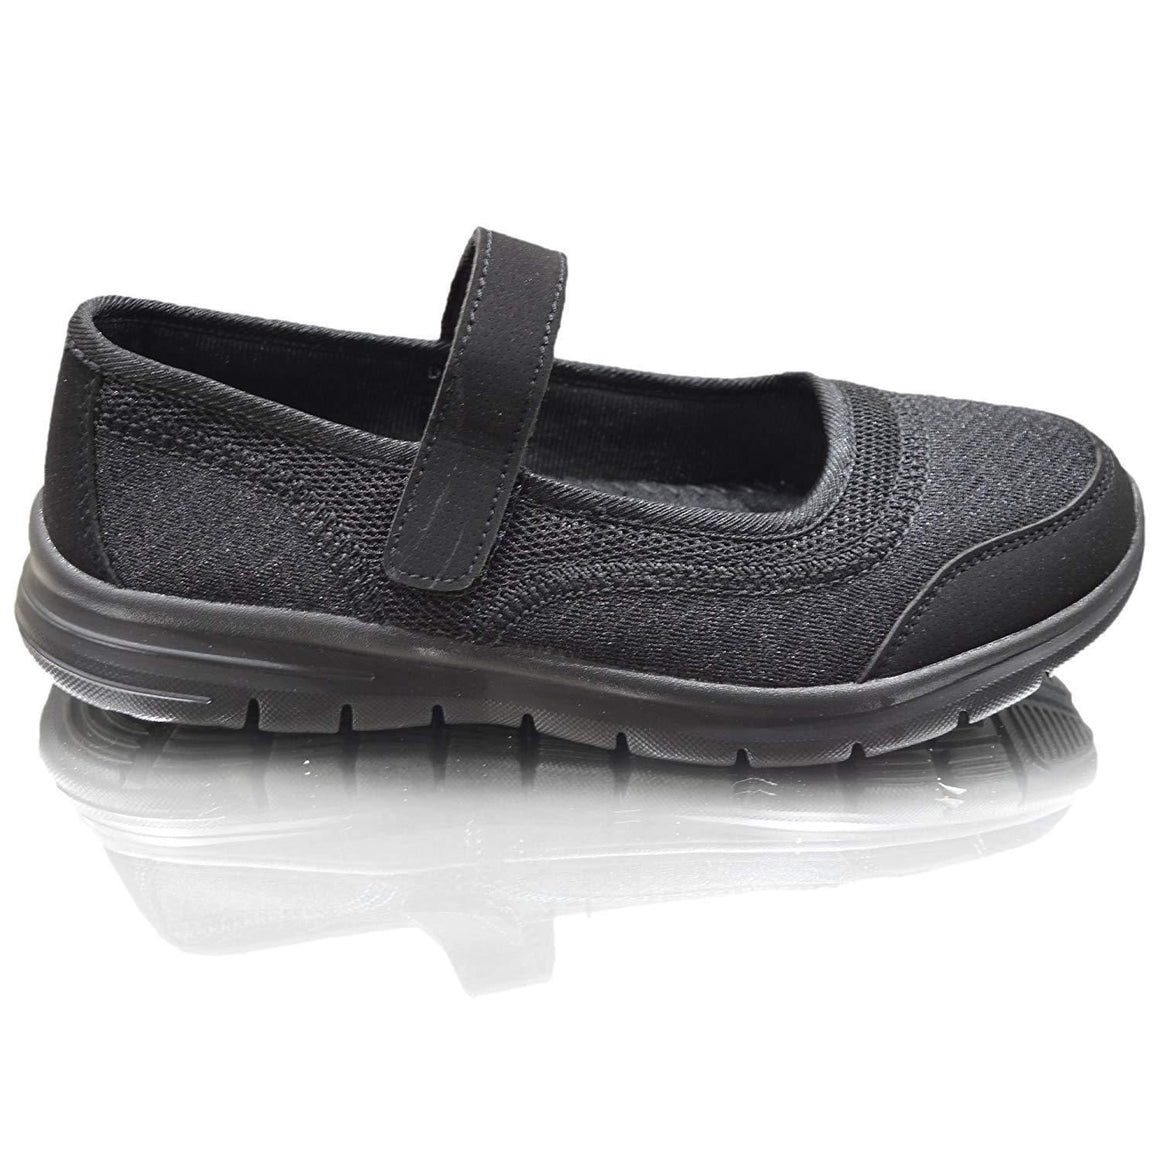 Womens Weight Less Air Tech Ladies Trainers Slip On Pumps Moccasins Girls Shoes Sizes (6 UK / 39 EU, Black Velcro)